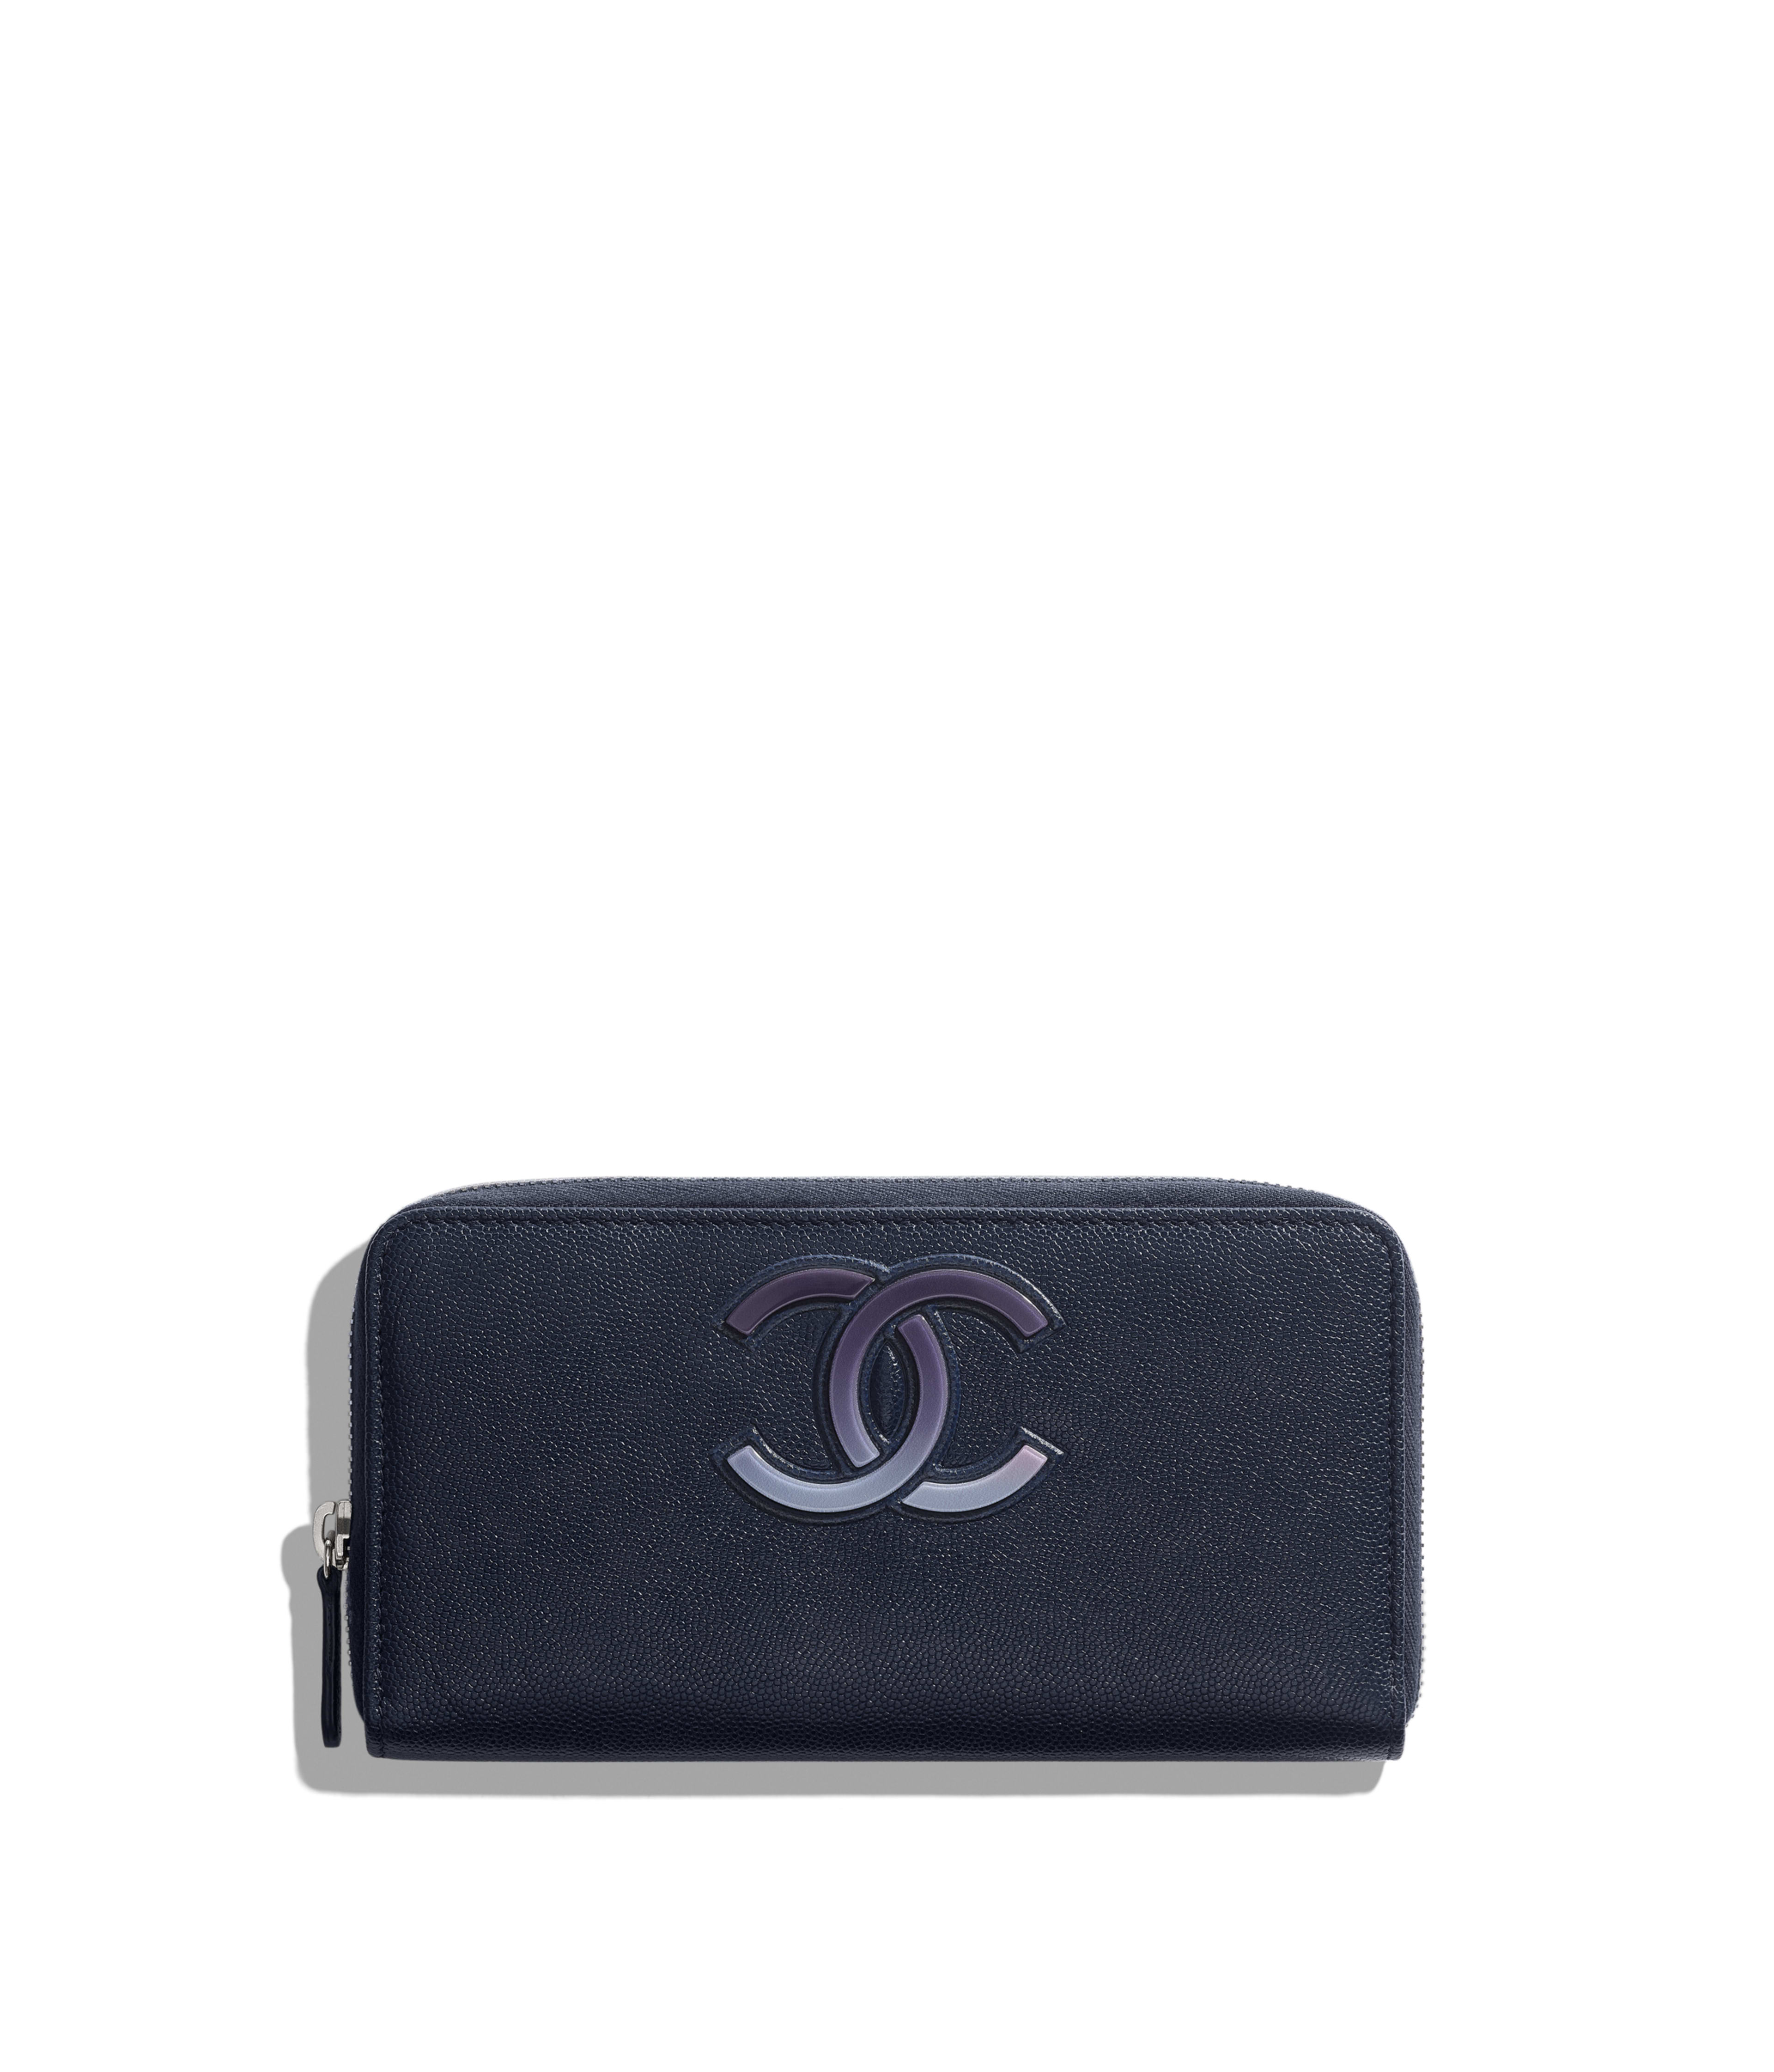 9e6753082a65 Long Zipped Wallet Grained Goatskin & Silver-Tone Metal, Navy Blue & Blue  Ref. AP0138B00070N0459